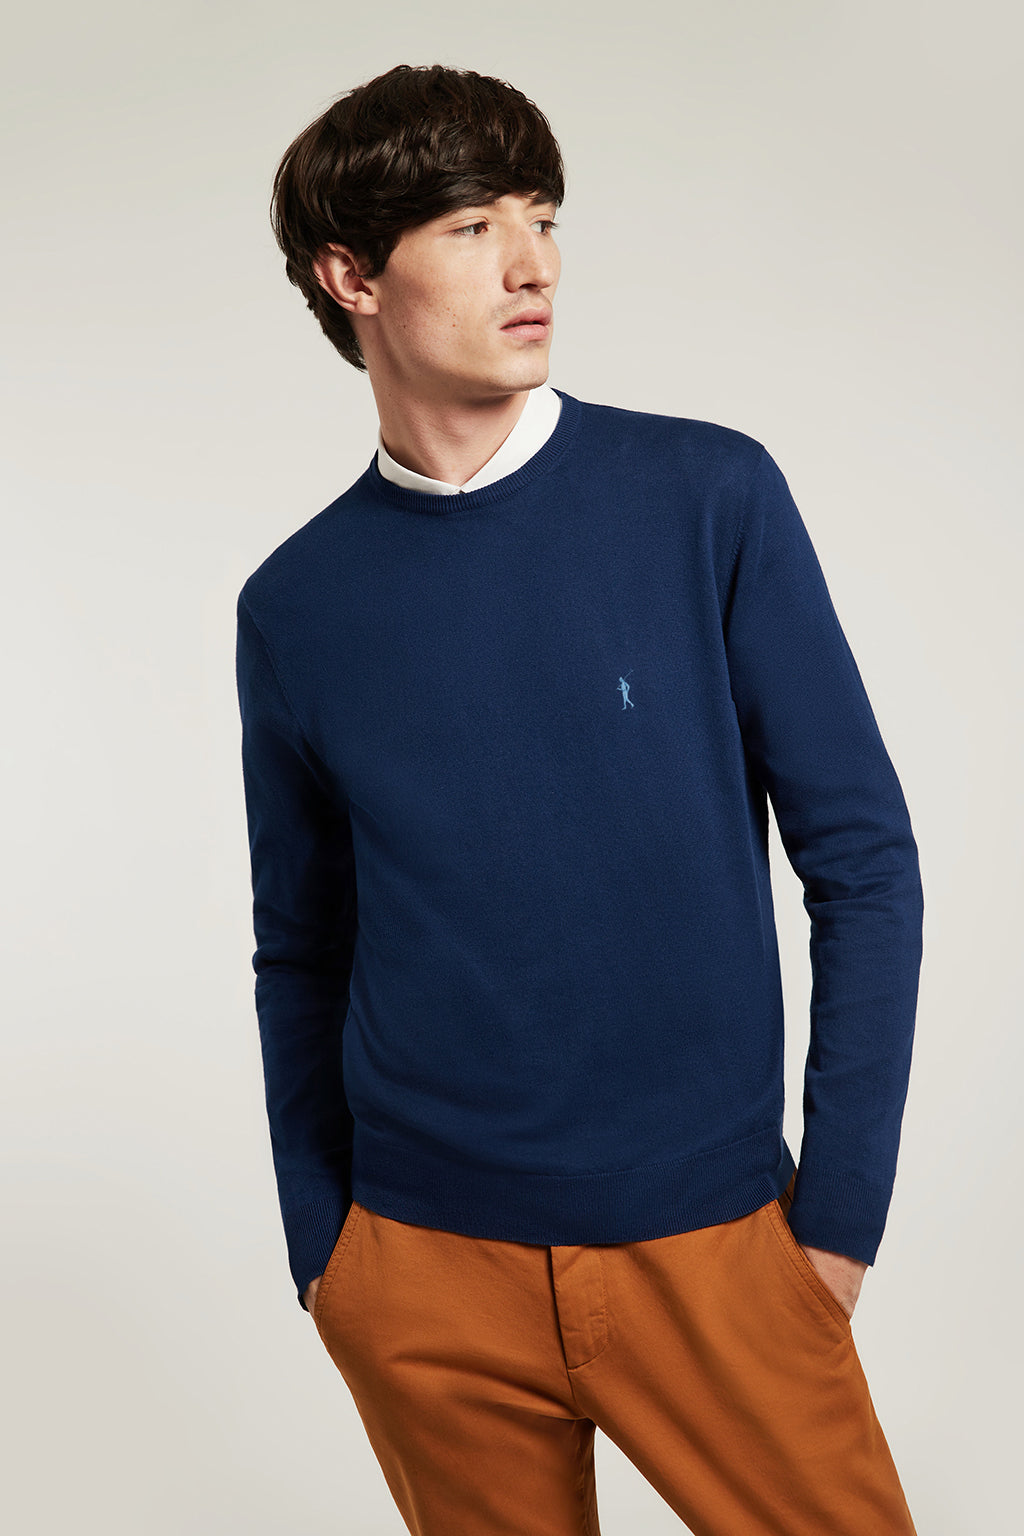 Indigo blue round neck jumper with embroidered logo